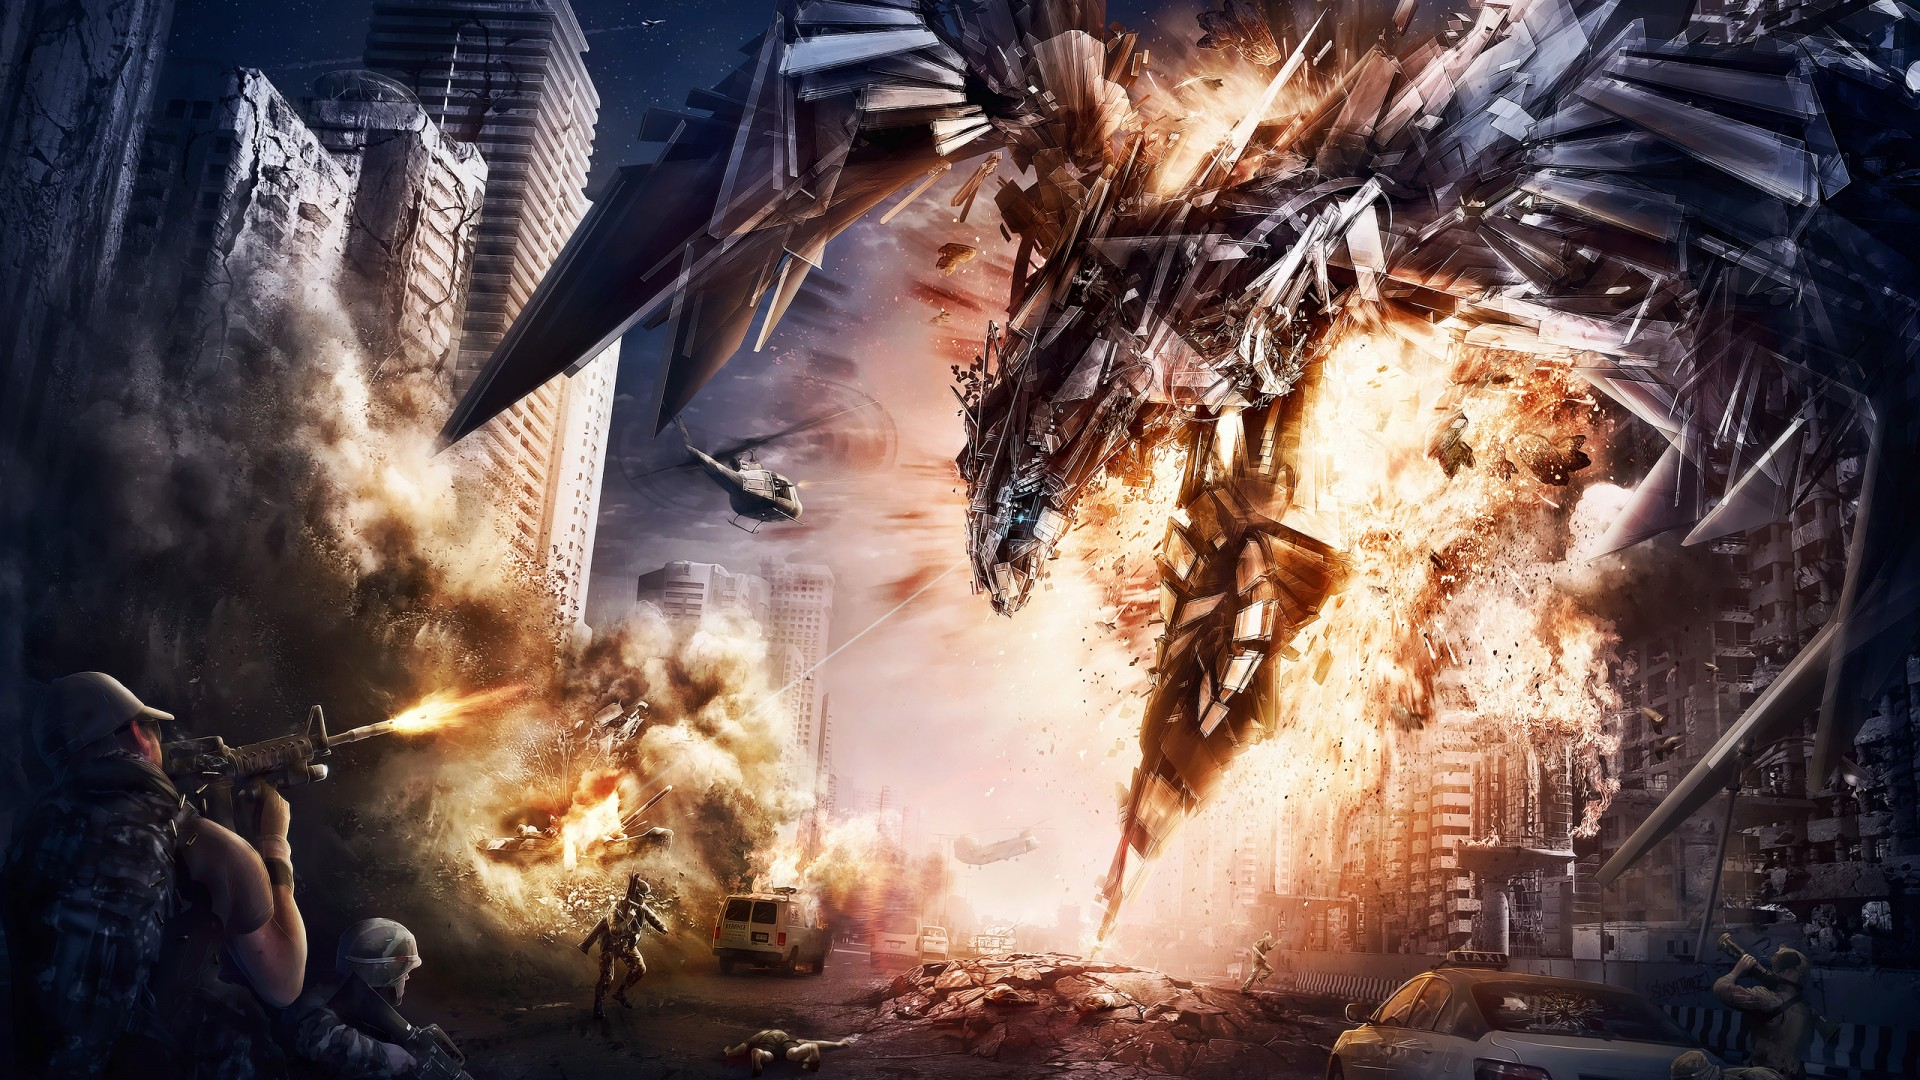 Wallpaper 3d Nature 1280x1024 Transformers 4 Artwork Wallpapers Hd Wallpapers Id 12214